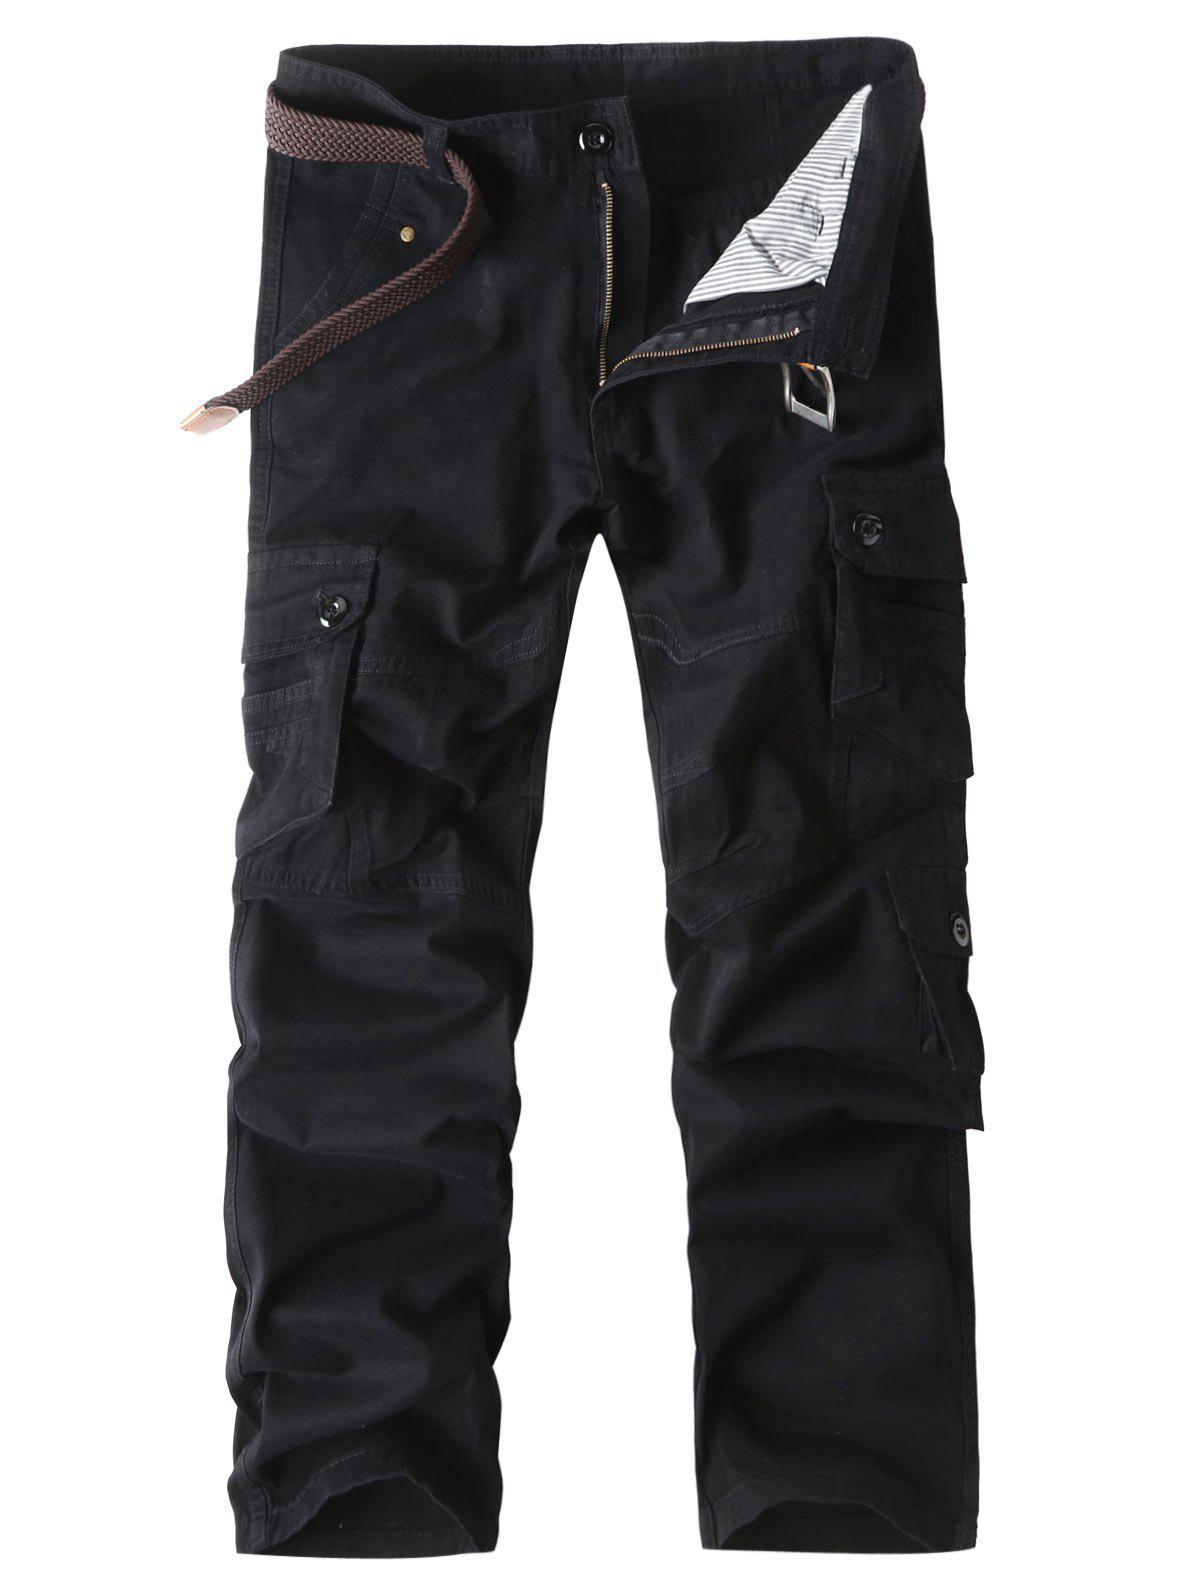 Discount Button Pockets Zip Fly Straight Cargo Pants